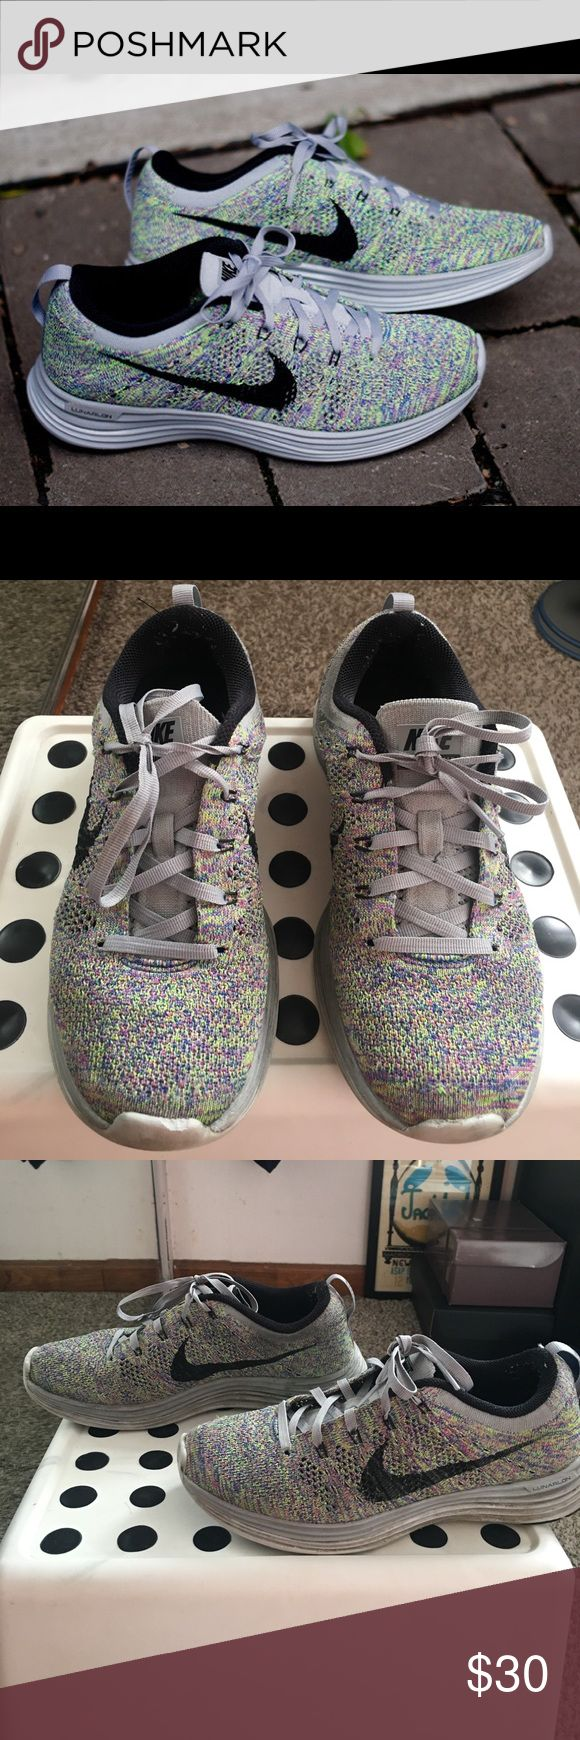 Nike Air Flyknit Lunar+1  Sneakers Multi Wmns 6.5 Multicolor Flyknit sneakers perfect for running/atheleisure/gym. Worn 10x and majority of those times were for running. Signs of wear on toe, outersole and sole. Still tons of wear left. Nike Shoes Sneakers